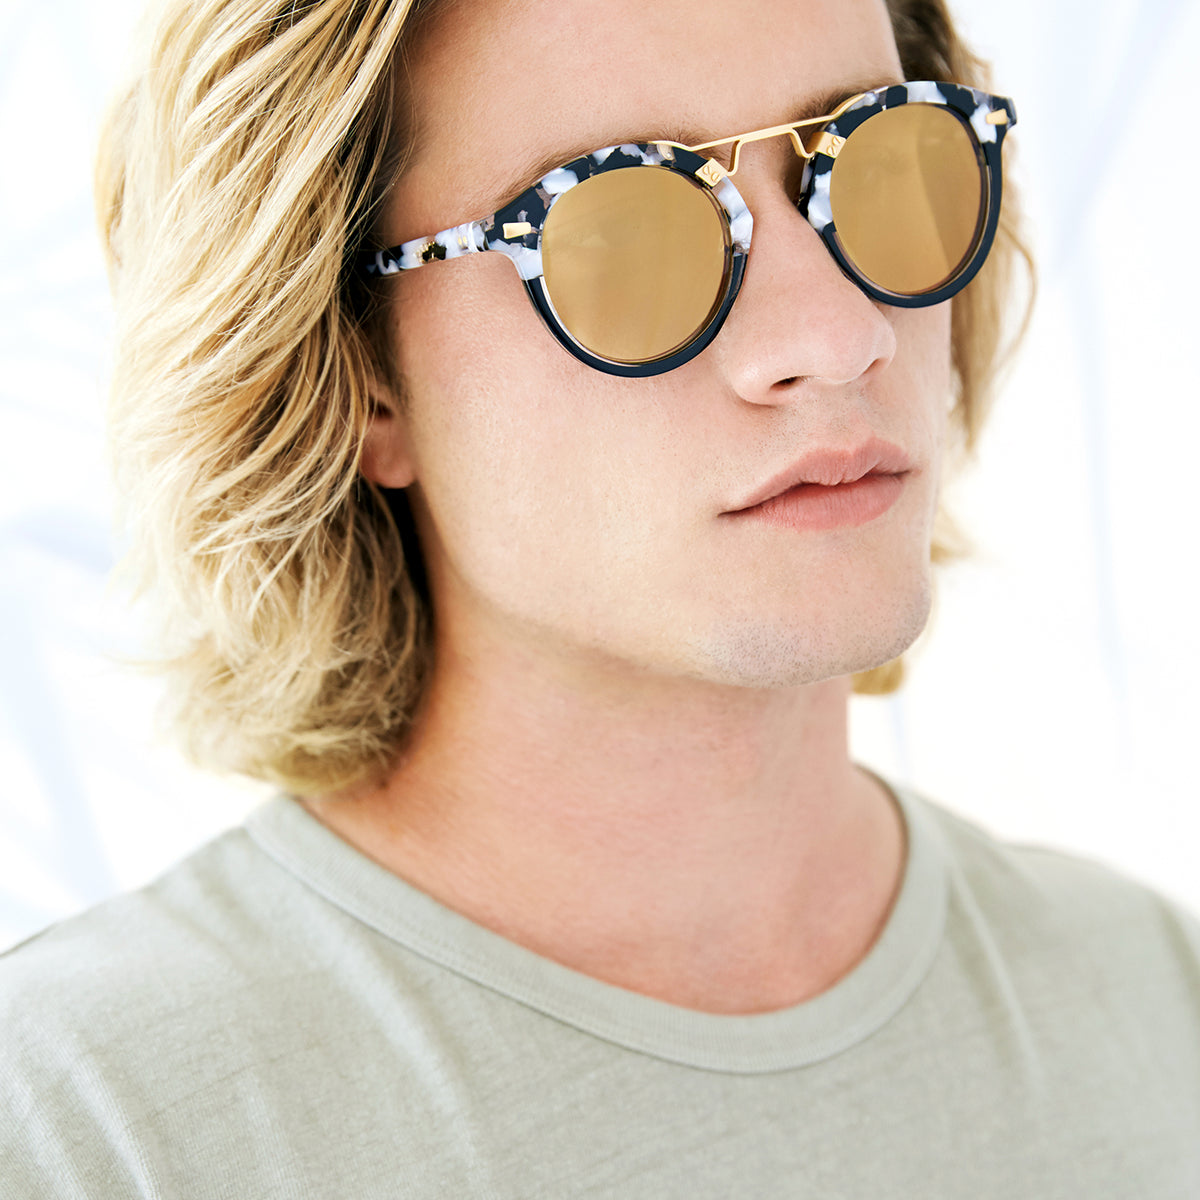 STL II | Interstellar to Black Crystal 24K - round Sunglasses handcrafted from acetate featuring 24K gold hardware. | Mens